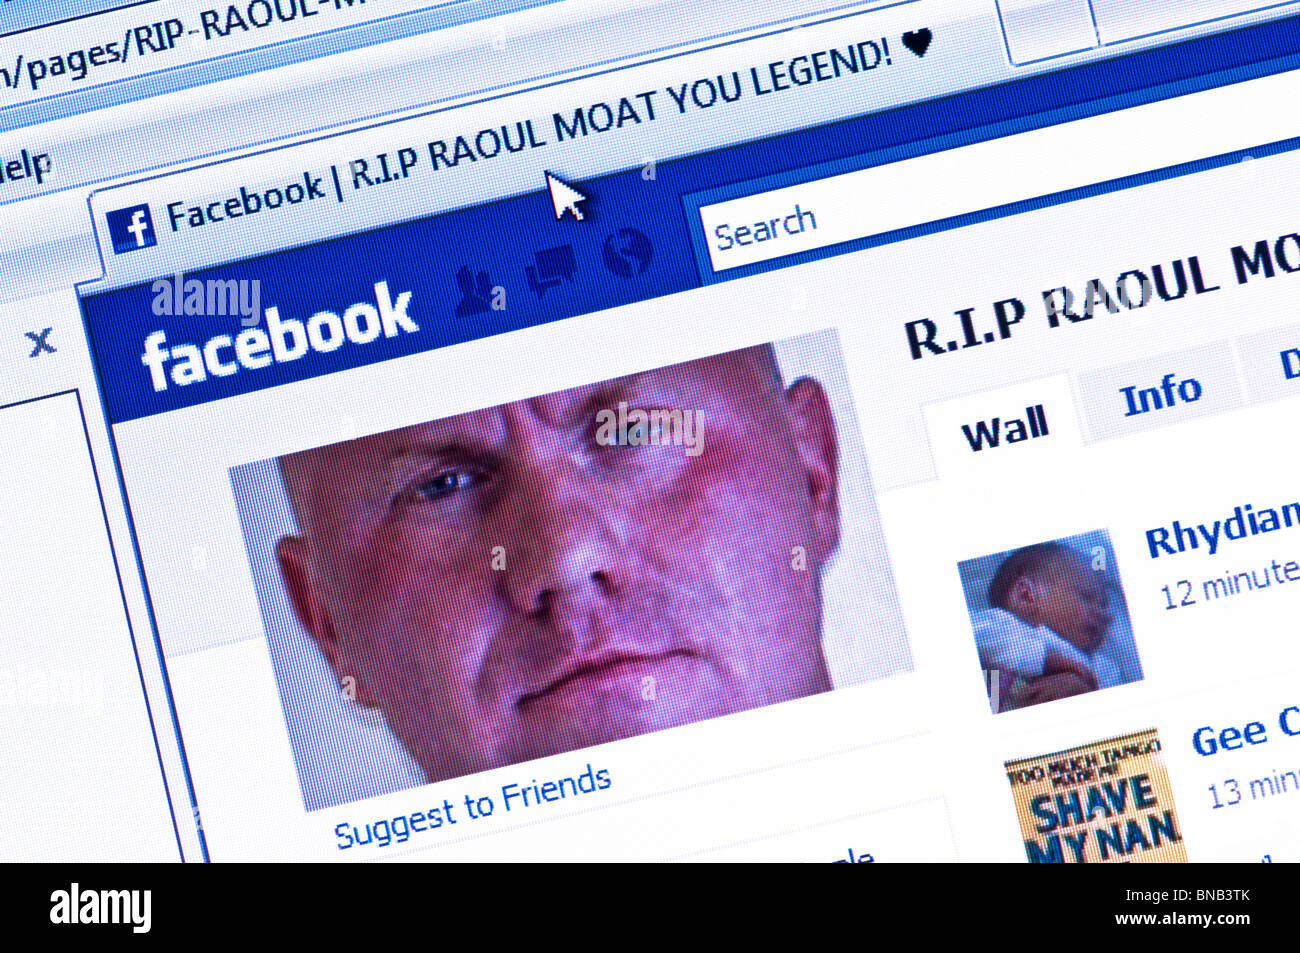 Controversial Raoul Moat Facebook tribute page - set up following his death in a showdown with armed UK police on - Stock Image